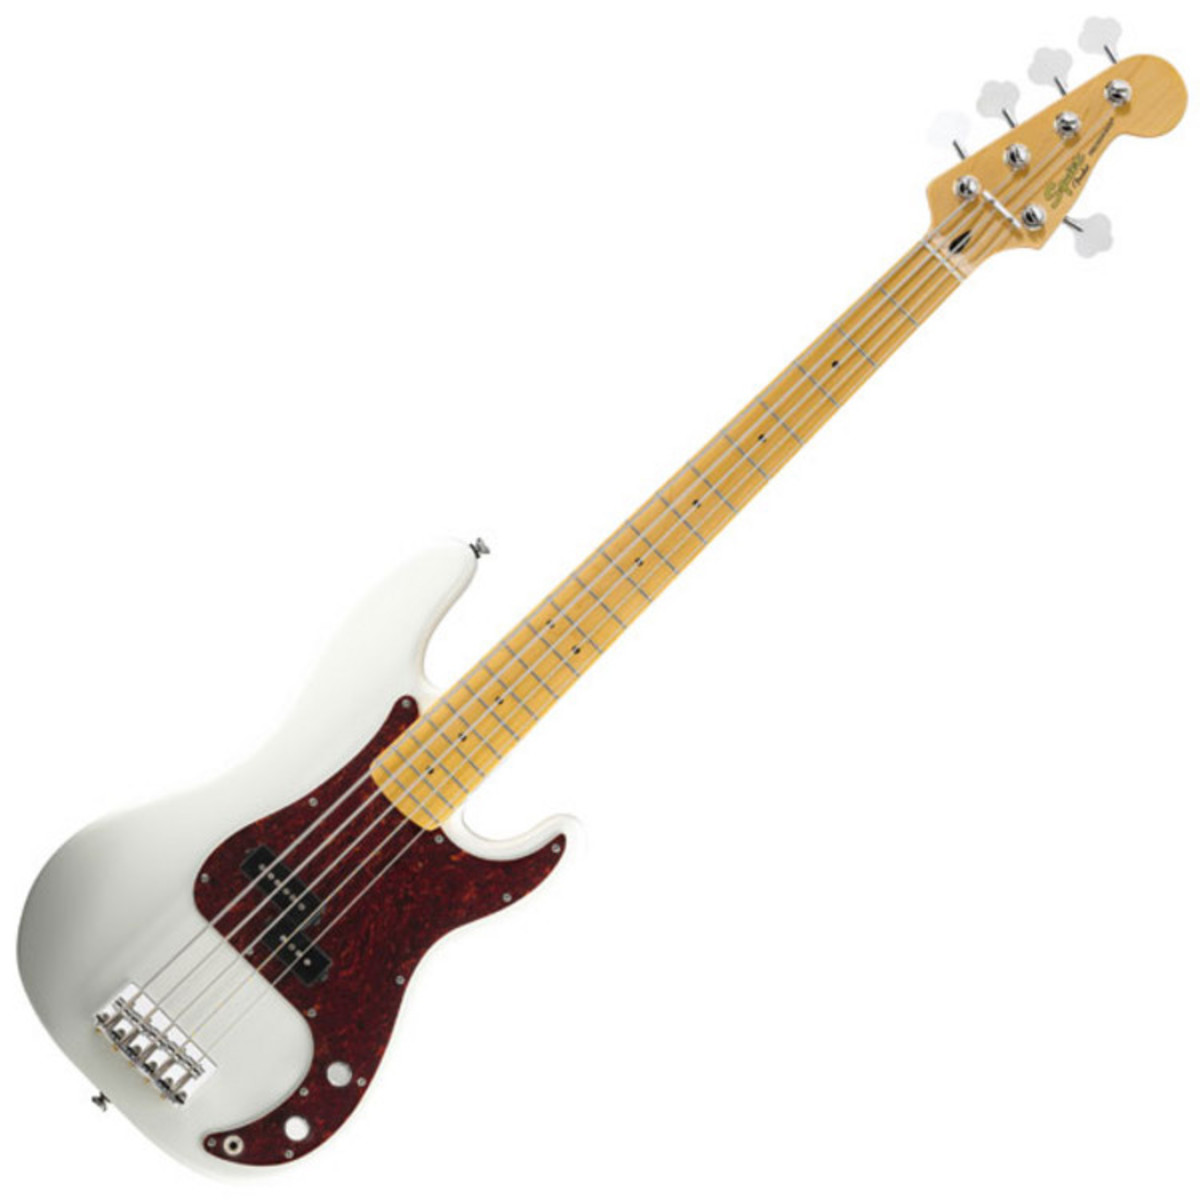 squier by fender vintage modified p bass v 5 string olympic white at. Black Bedroom Furniture Sets. Home Design Ideas